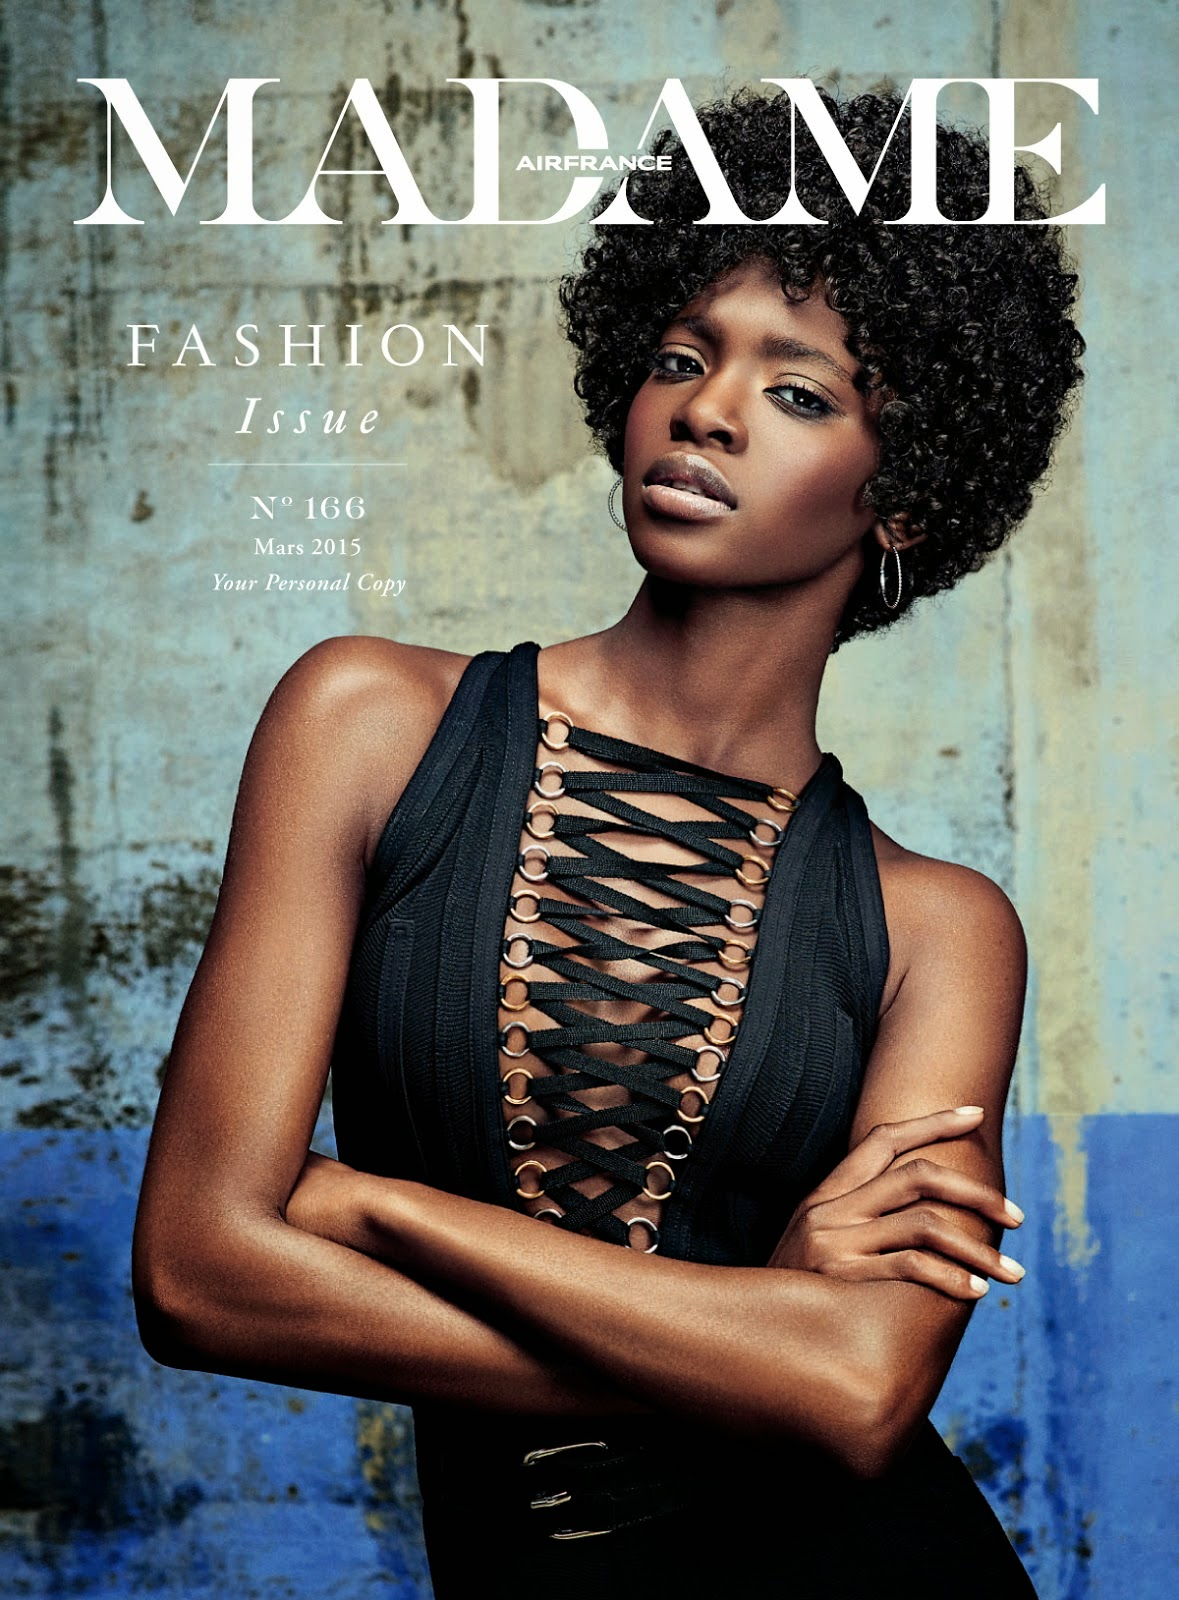 Model @ Marie Fofana by Christian Anwander for Air France Madame March 2015